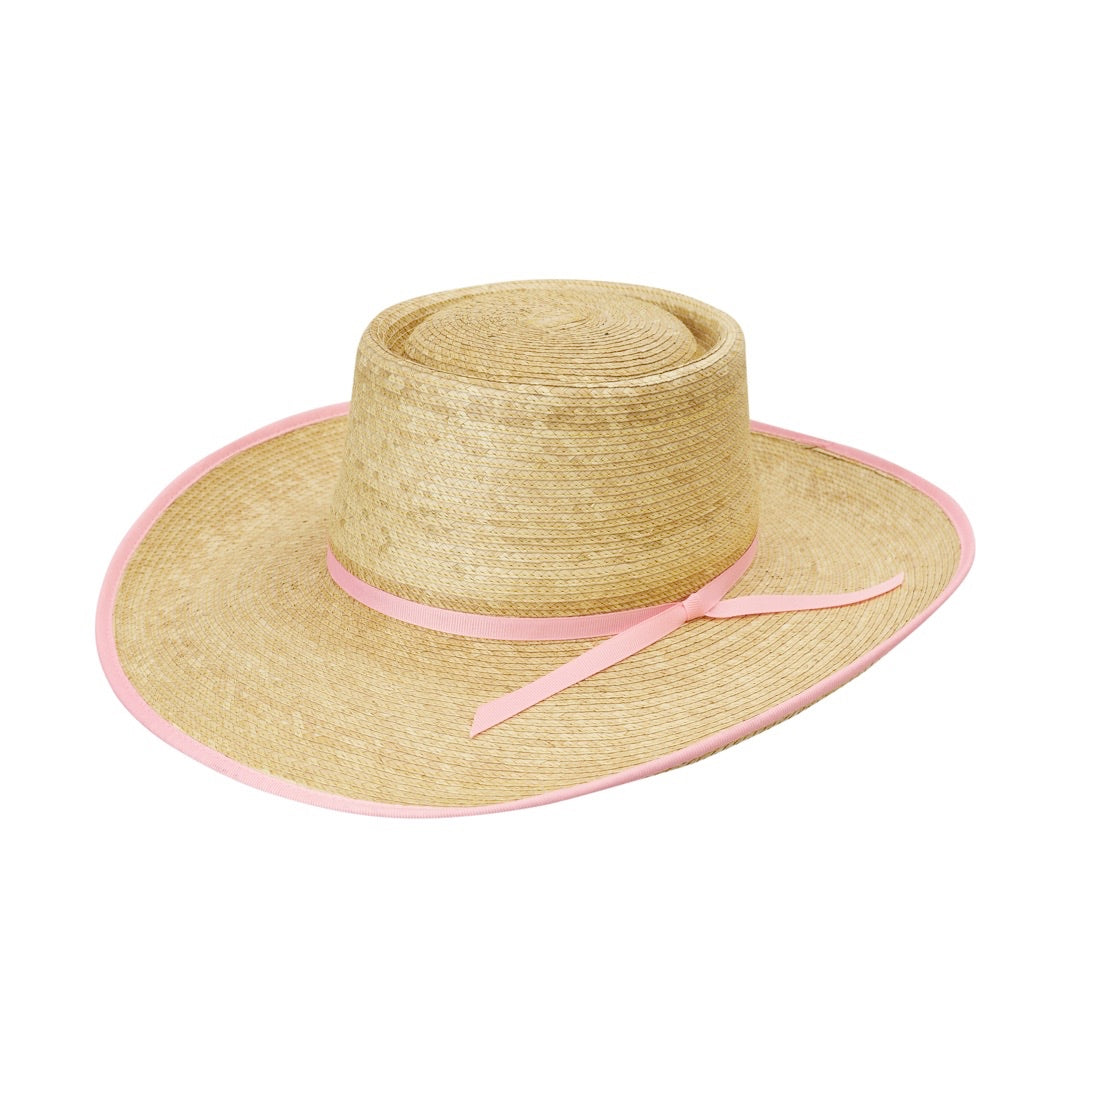 Sunbody Reata Oak 4 Inch Brim  Light Pink Edge Bound